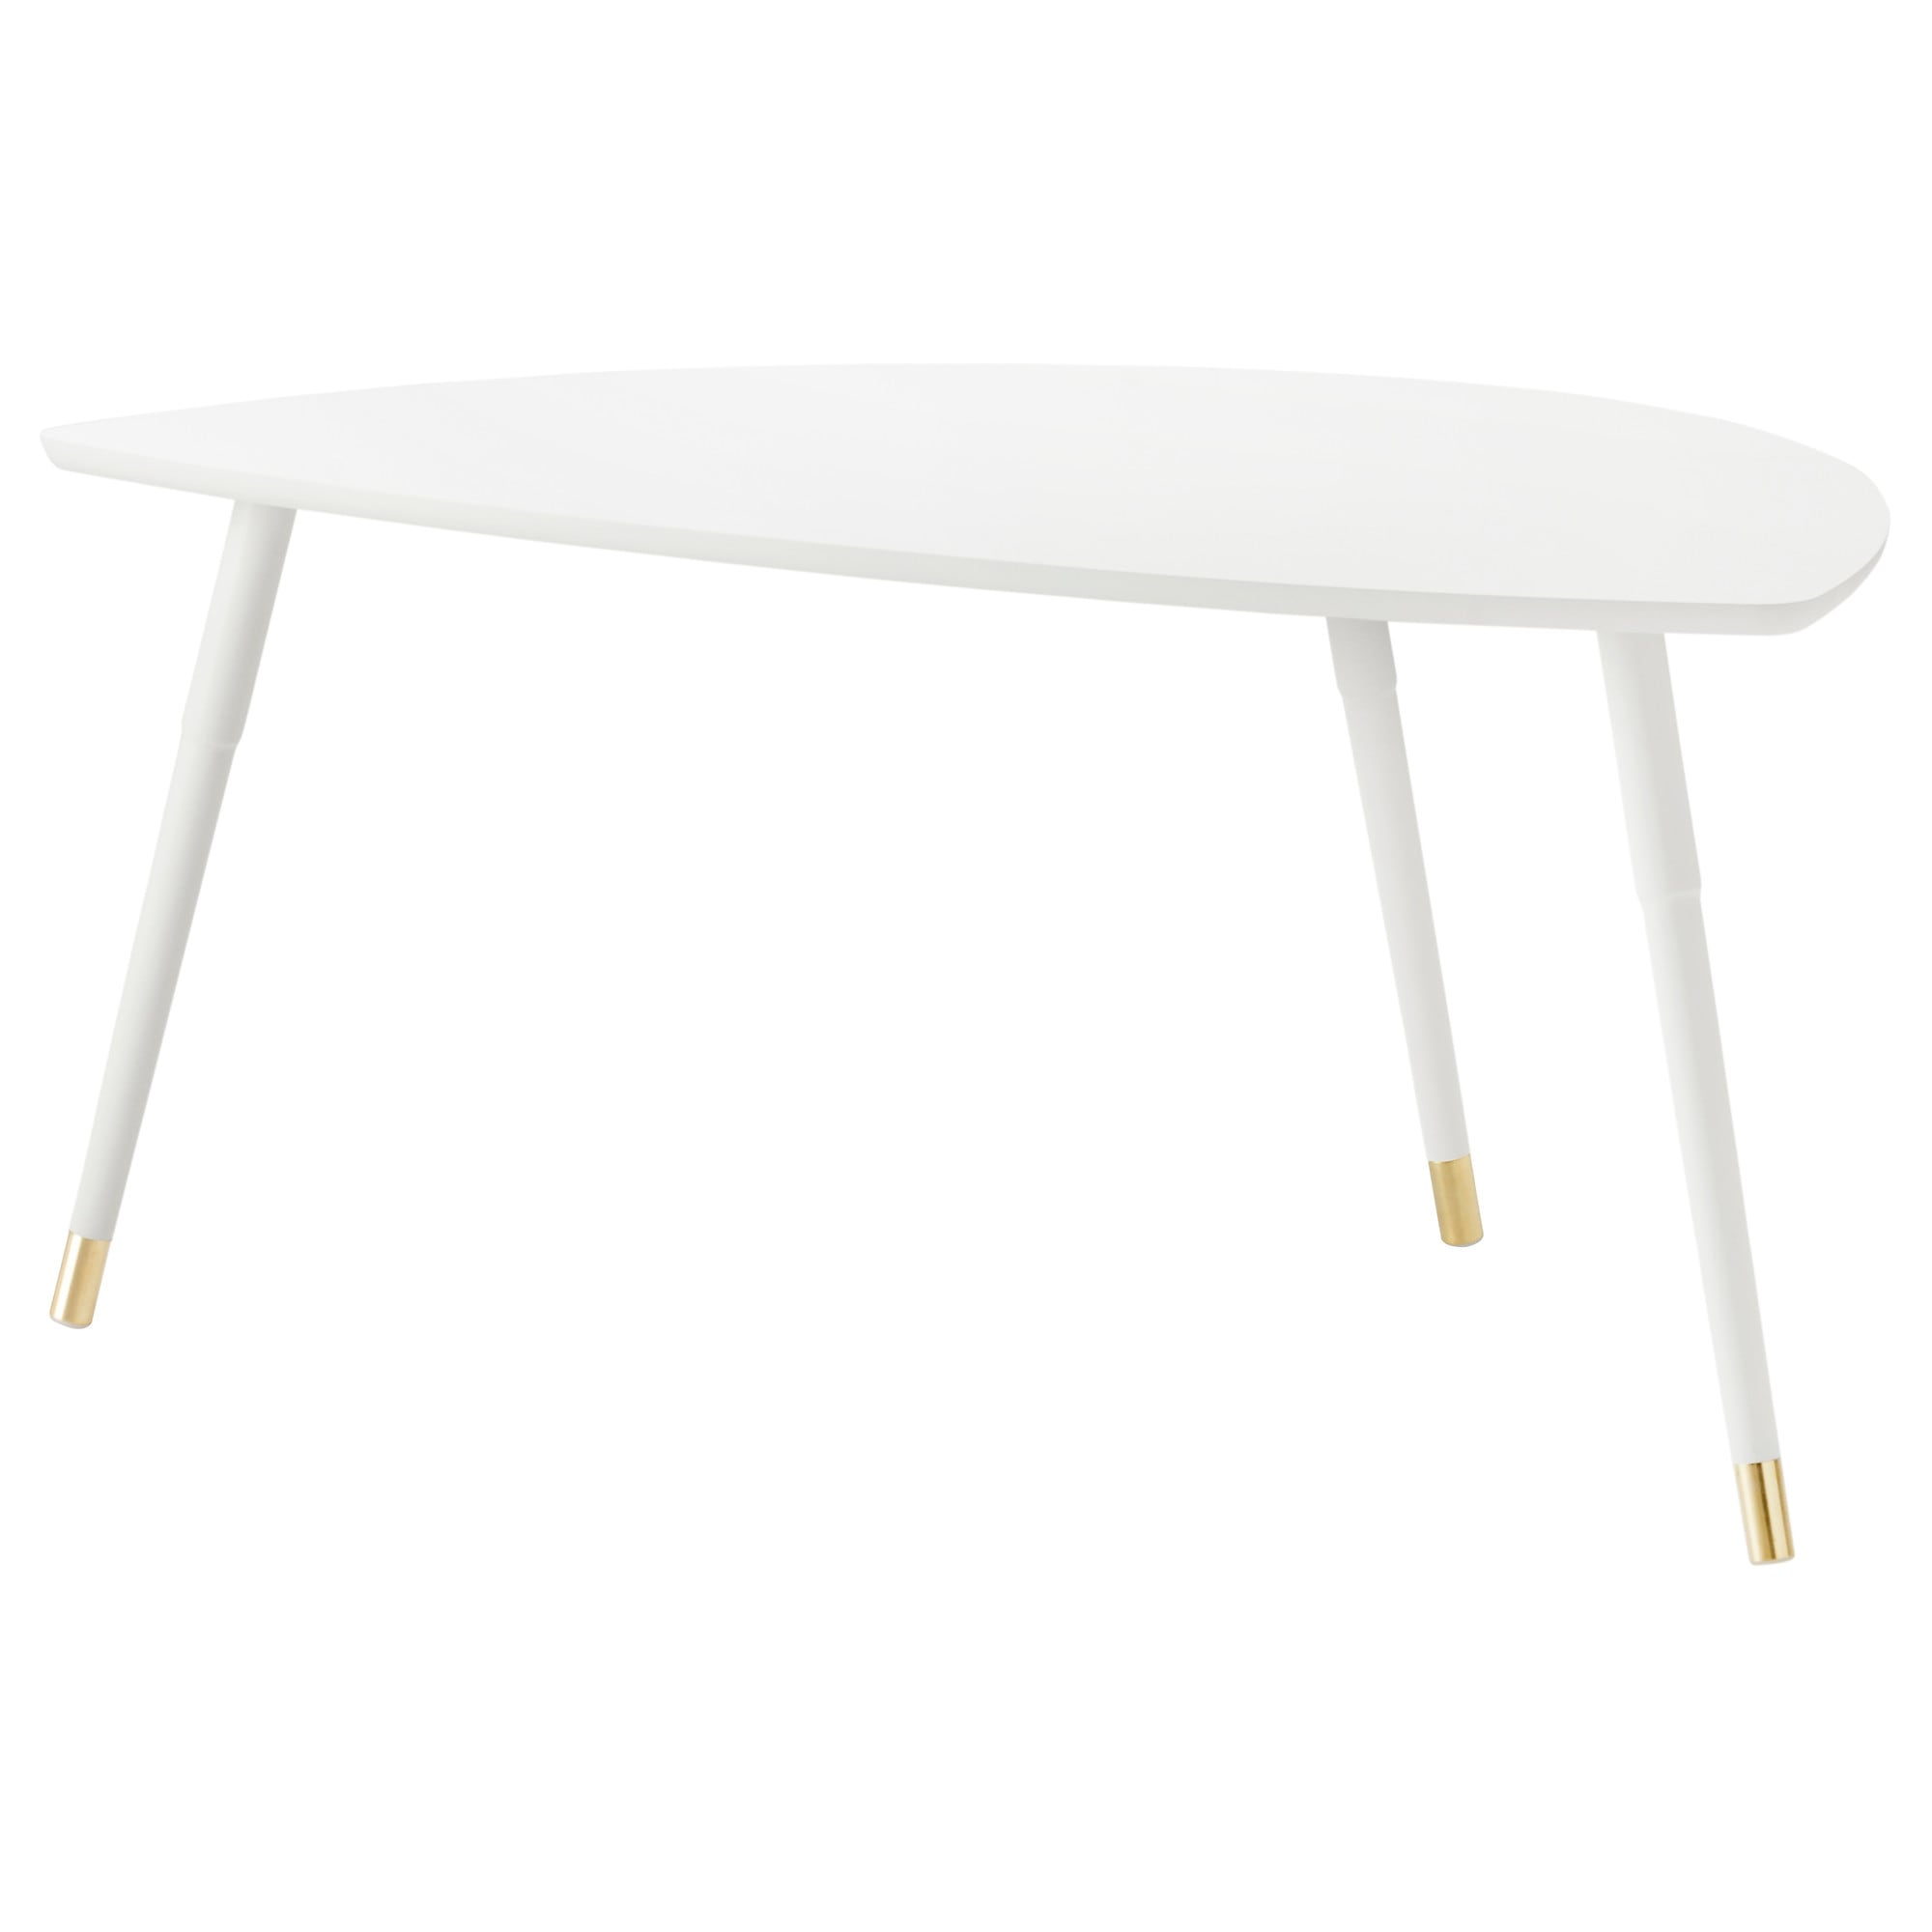 Table basse relevable ikea suisse for Table blanche ikea